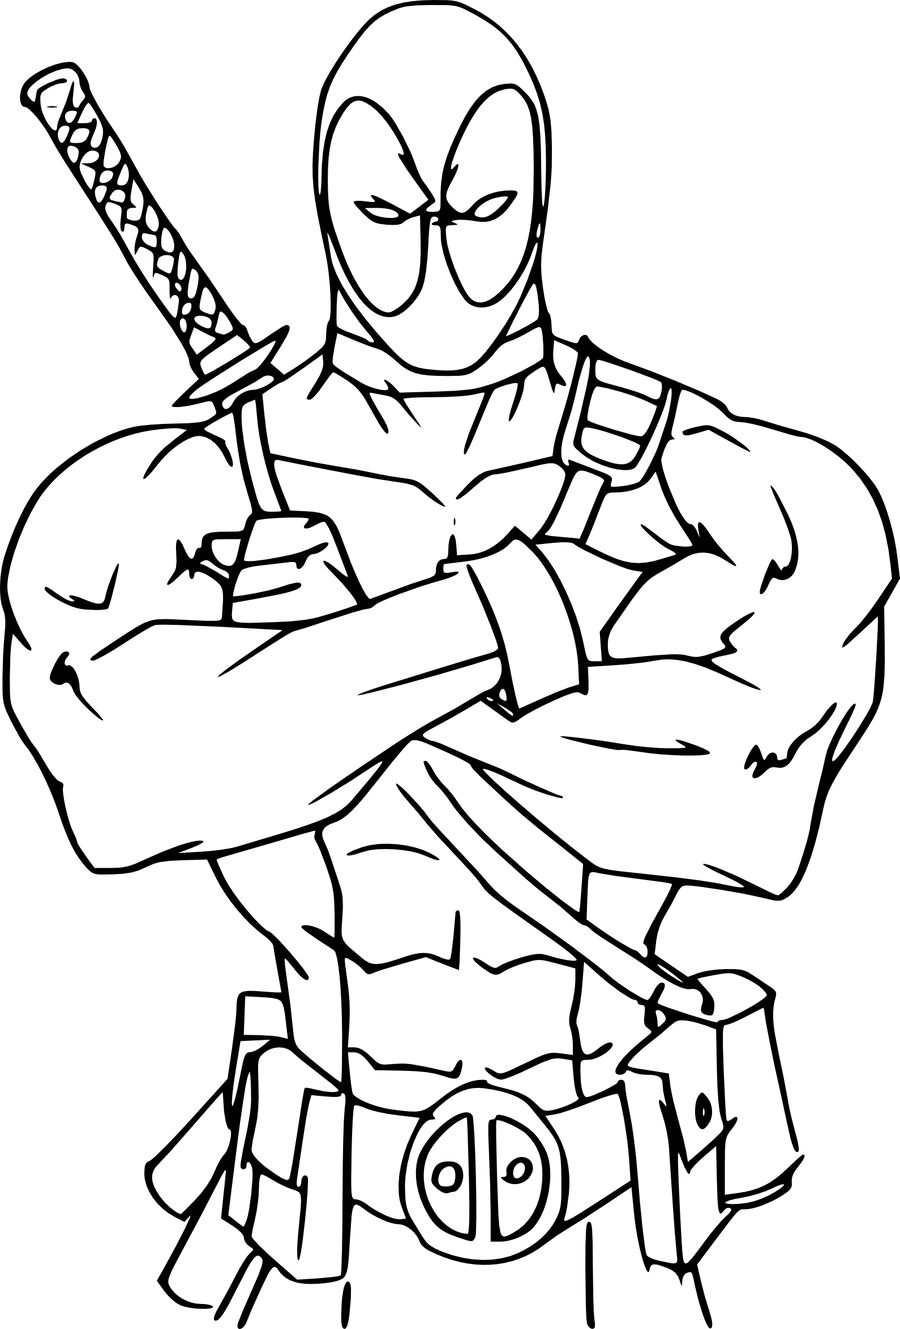 Printable Coloring Pages For Kids Coloringfolder Com Superhero Coloring Pages Cartoon Coloring Pages Coloring Pages